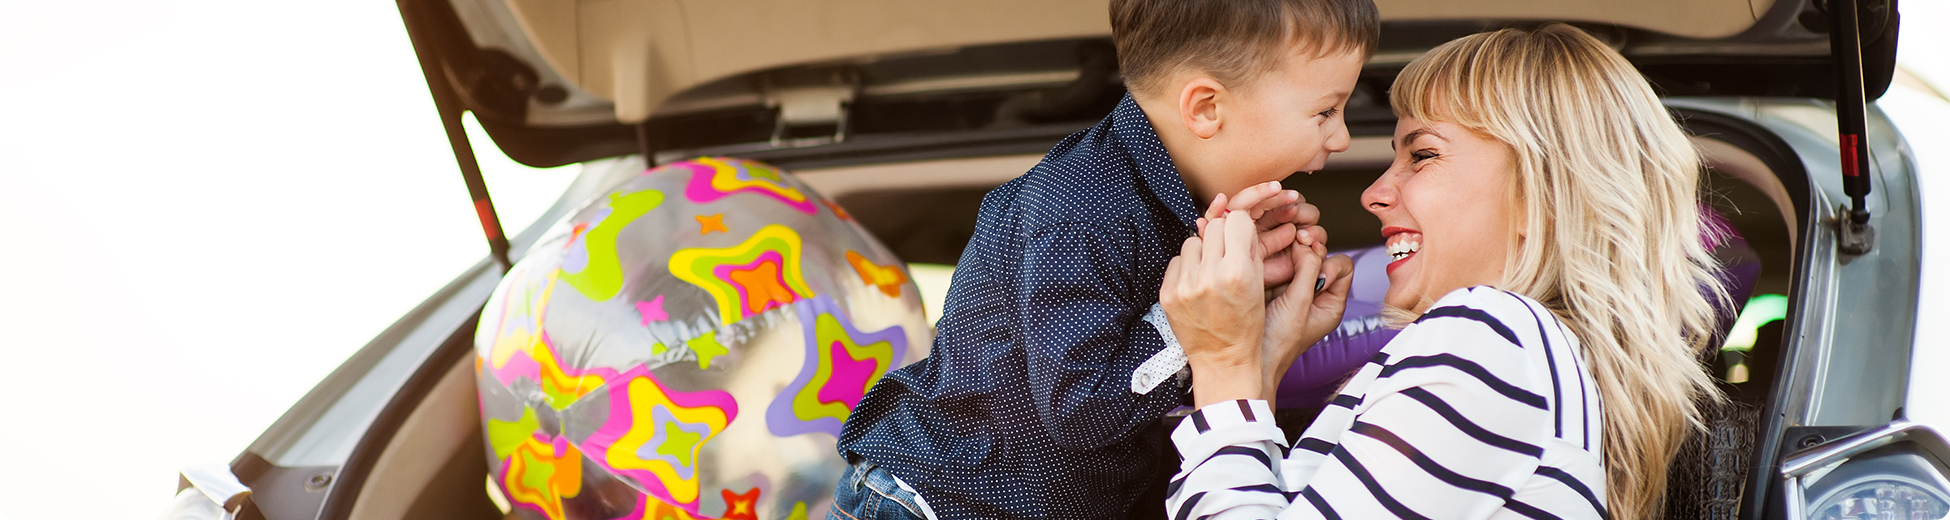 Women and son embracing in front of new car